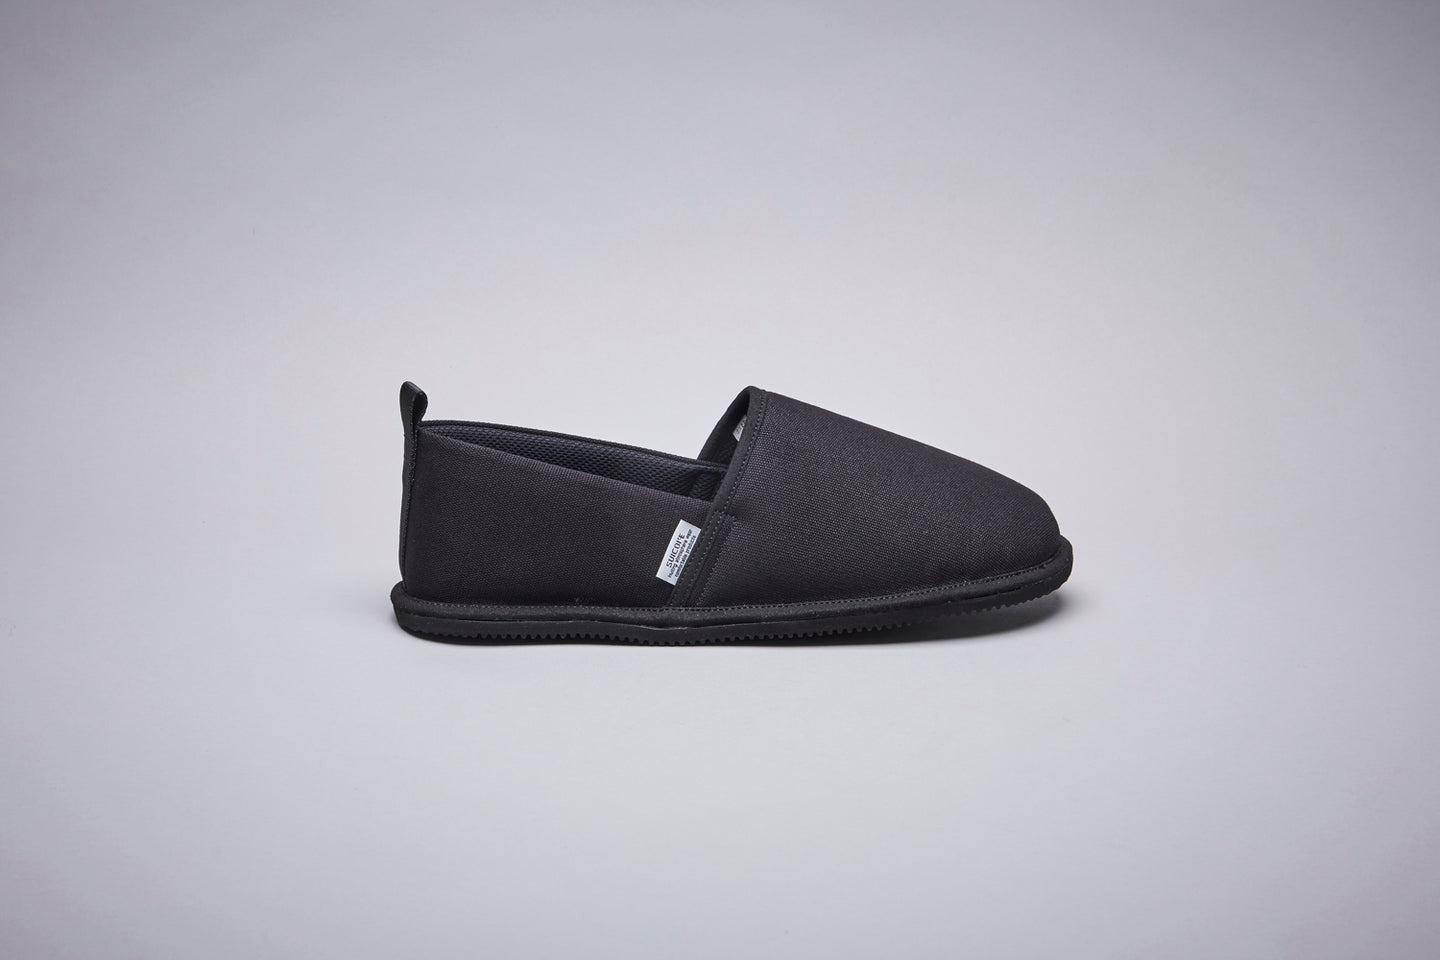 SUICOKE-Sandals-UN - Black-OG-147Official Webstore Spring 2021